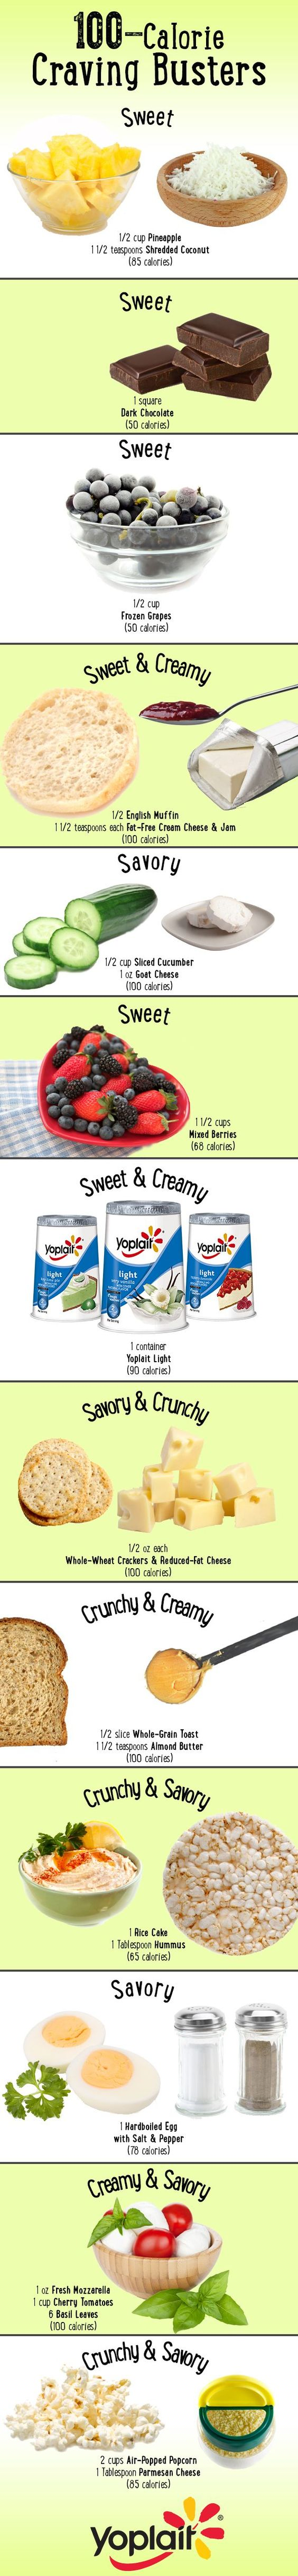 Satisfy Any Craving for Less than 100 Calories | via @SparkPeople #food #diet #treat